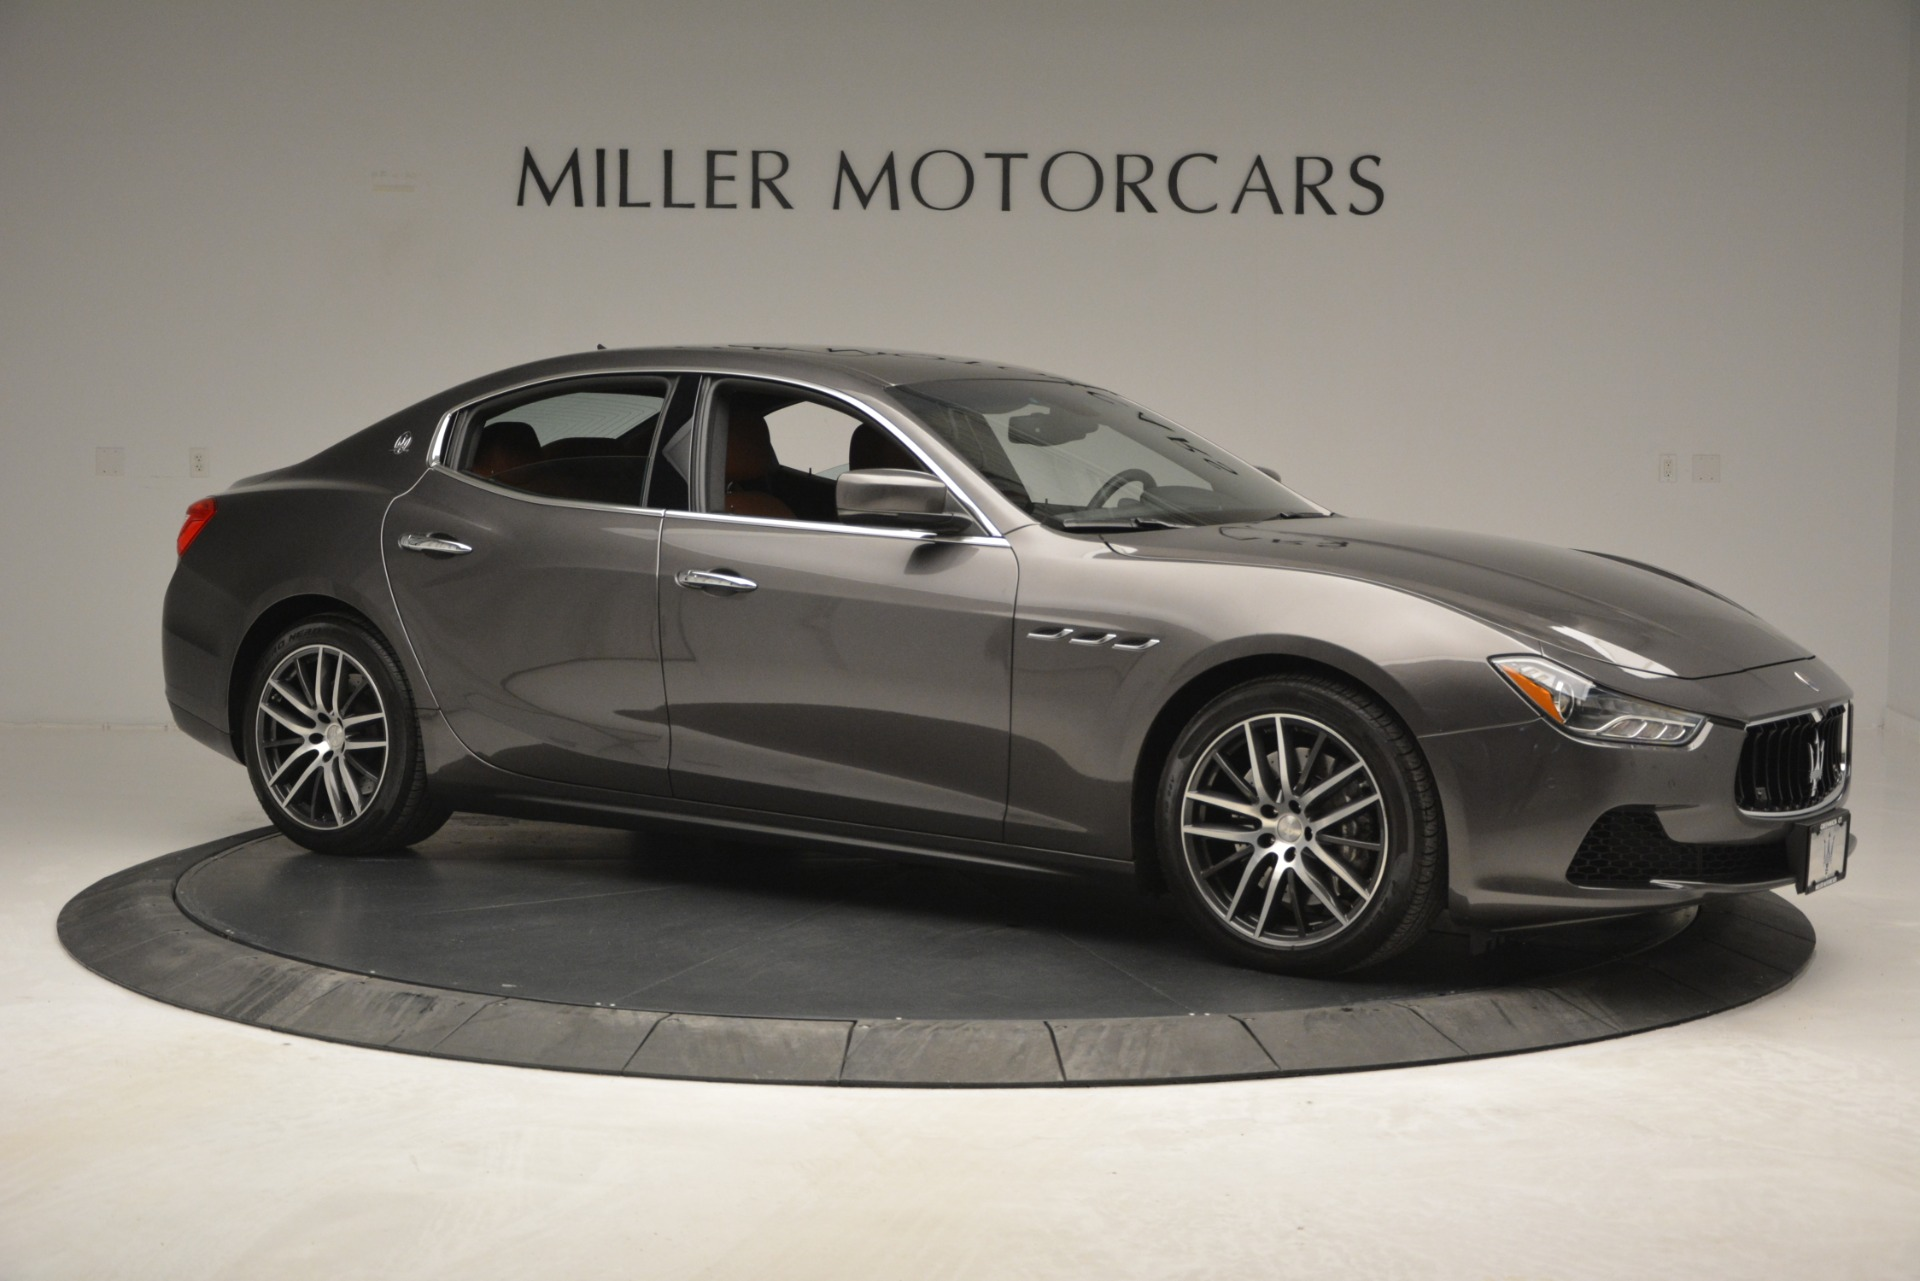 Used 2015 Maserati Ghibli S Q4 For Sale In Greenwich, CT. Alfa Romeo of Greenwich, 7483 2941_p11